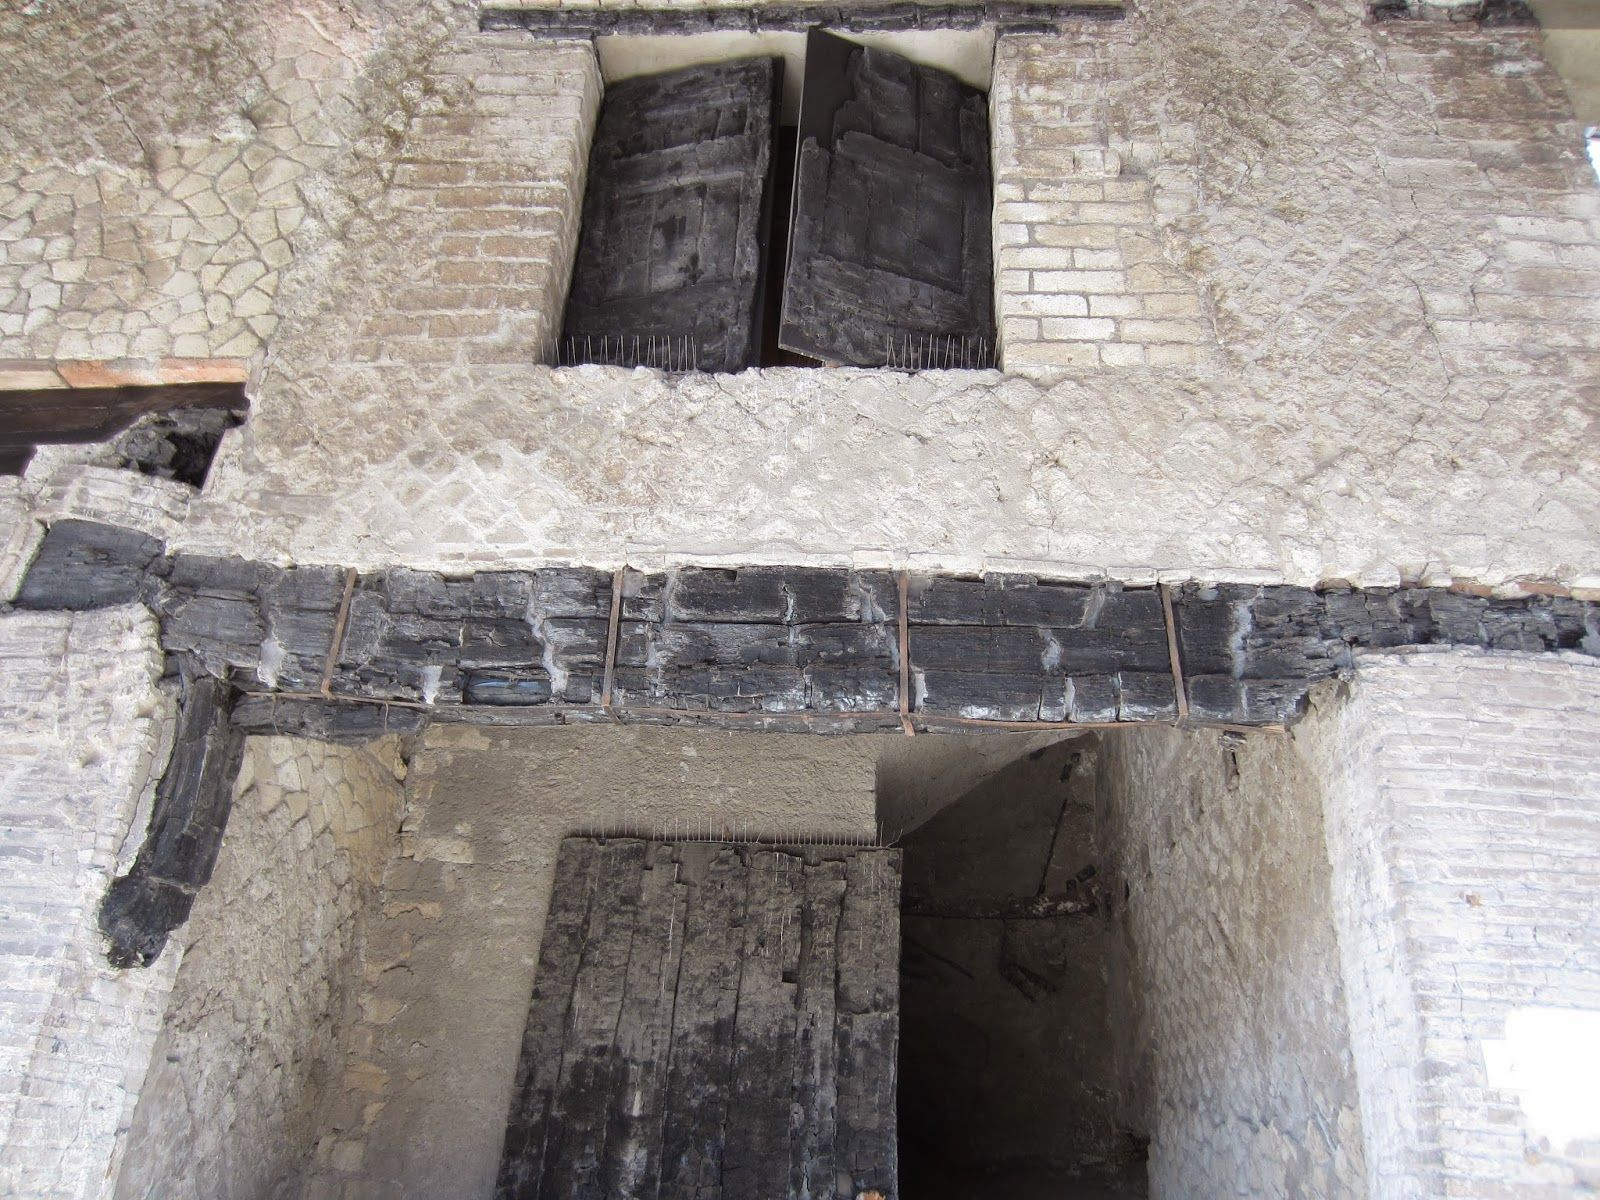 Herculaneum window, wood, give some idea of their methods of construction. The volcanic eruption acted in such a way as to preserve some of the original wood